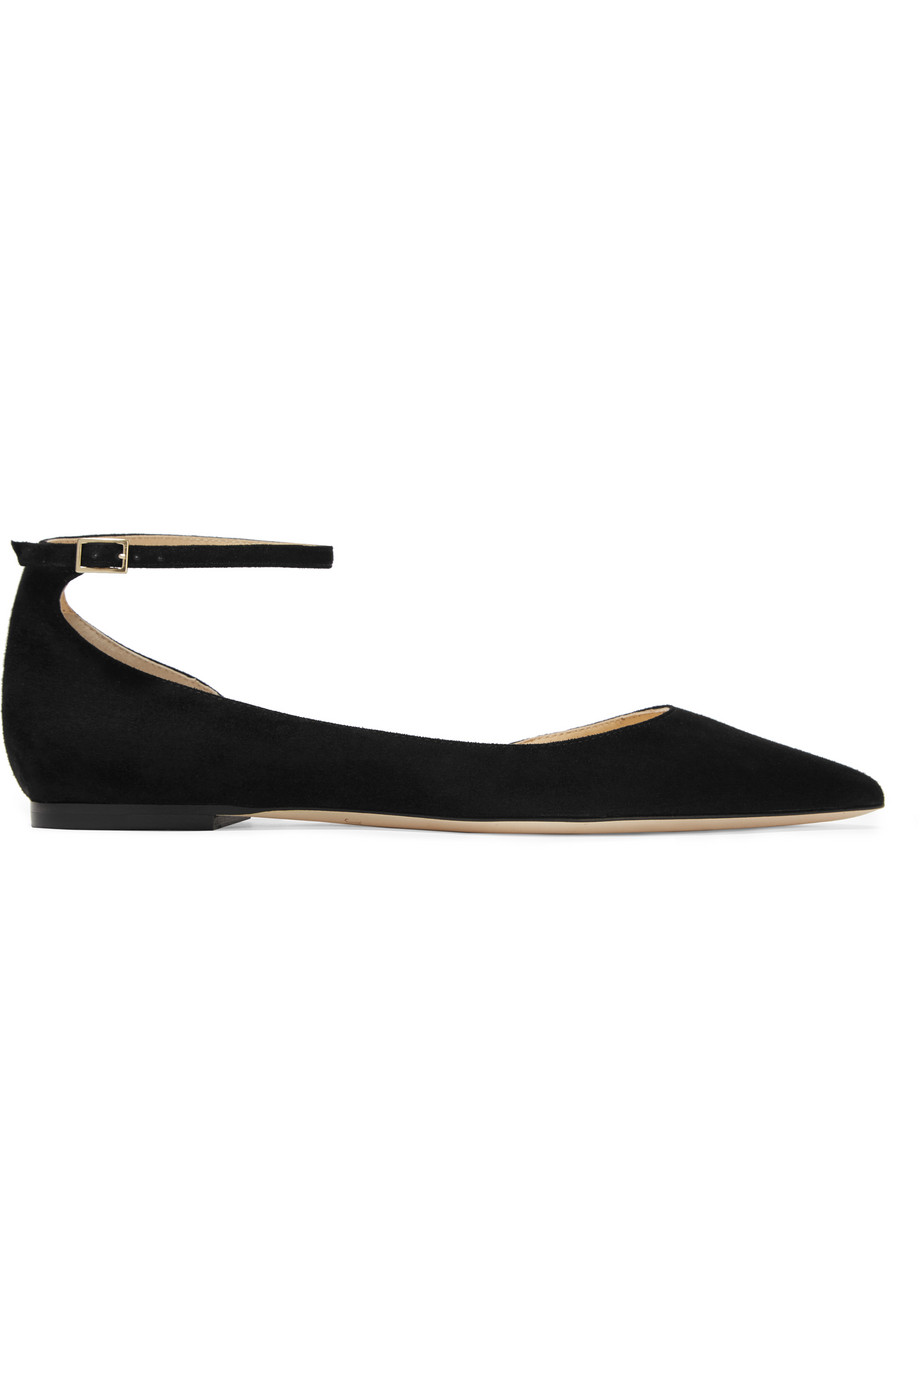 Jimmy Choo Lucy Suede Point-Toe Flats, Black, Women's US Size: 5, Size: 35.5